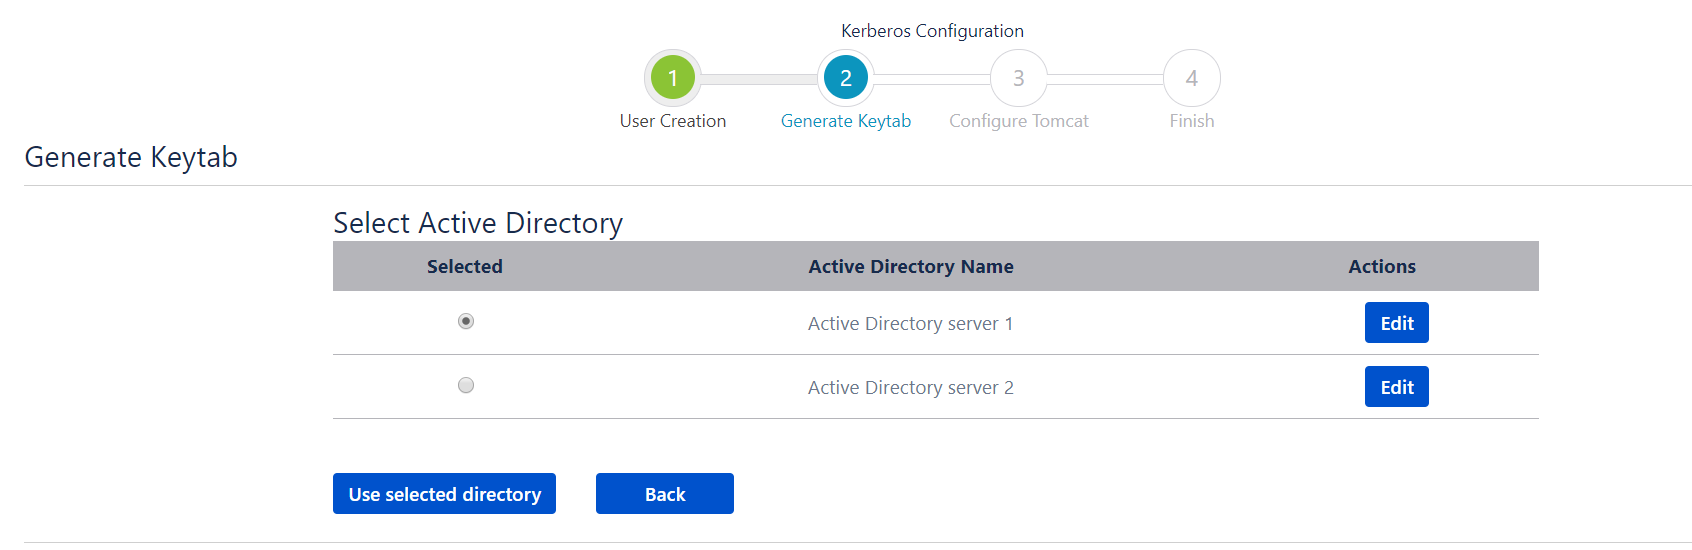 Kerberos, NTLM, Windows Authentication (SSO) into Jira with Integrated Windows Authentication (IWA)